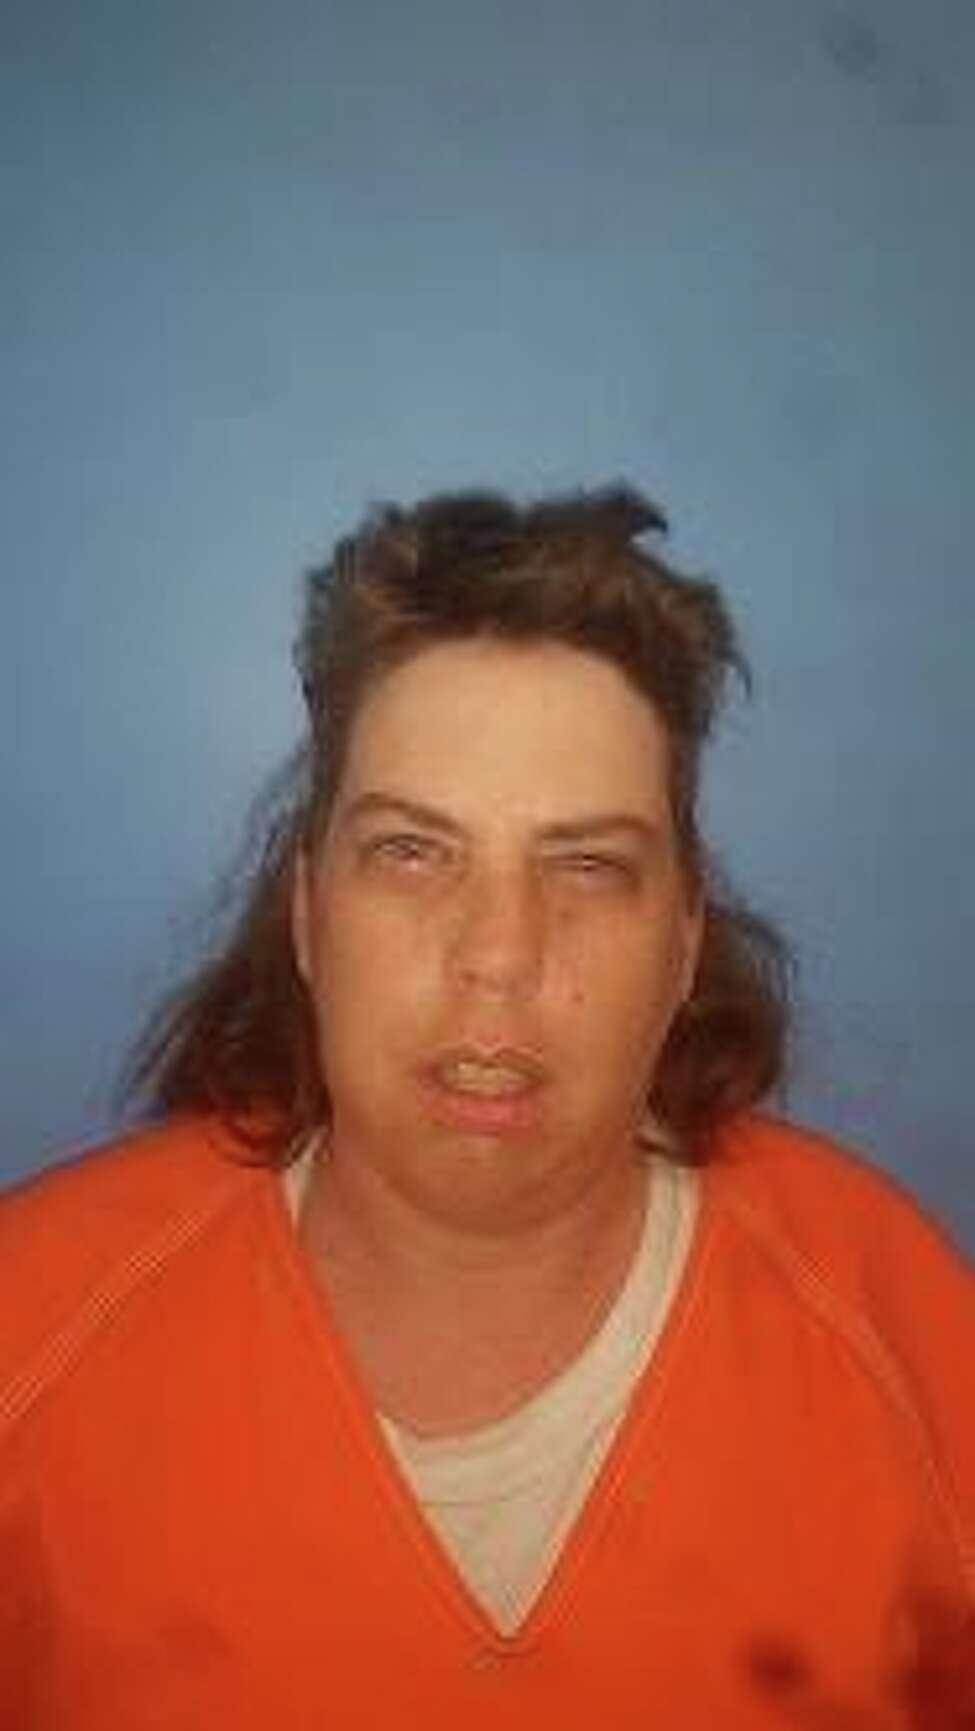 Kimberly D. Hofsteter, a 40-year-old woman from Hico, was arrested as part of a bust targeting drug traffickers in Hamilton, Hico and Clifton. Hofsteter has been charged with delivery of more than 1 gram but under 4 grams of oxycodone in a drug-free zone, a first-degree felony.